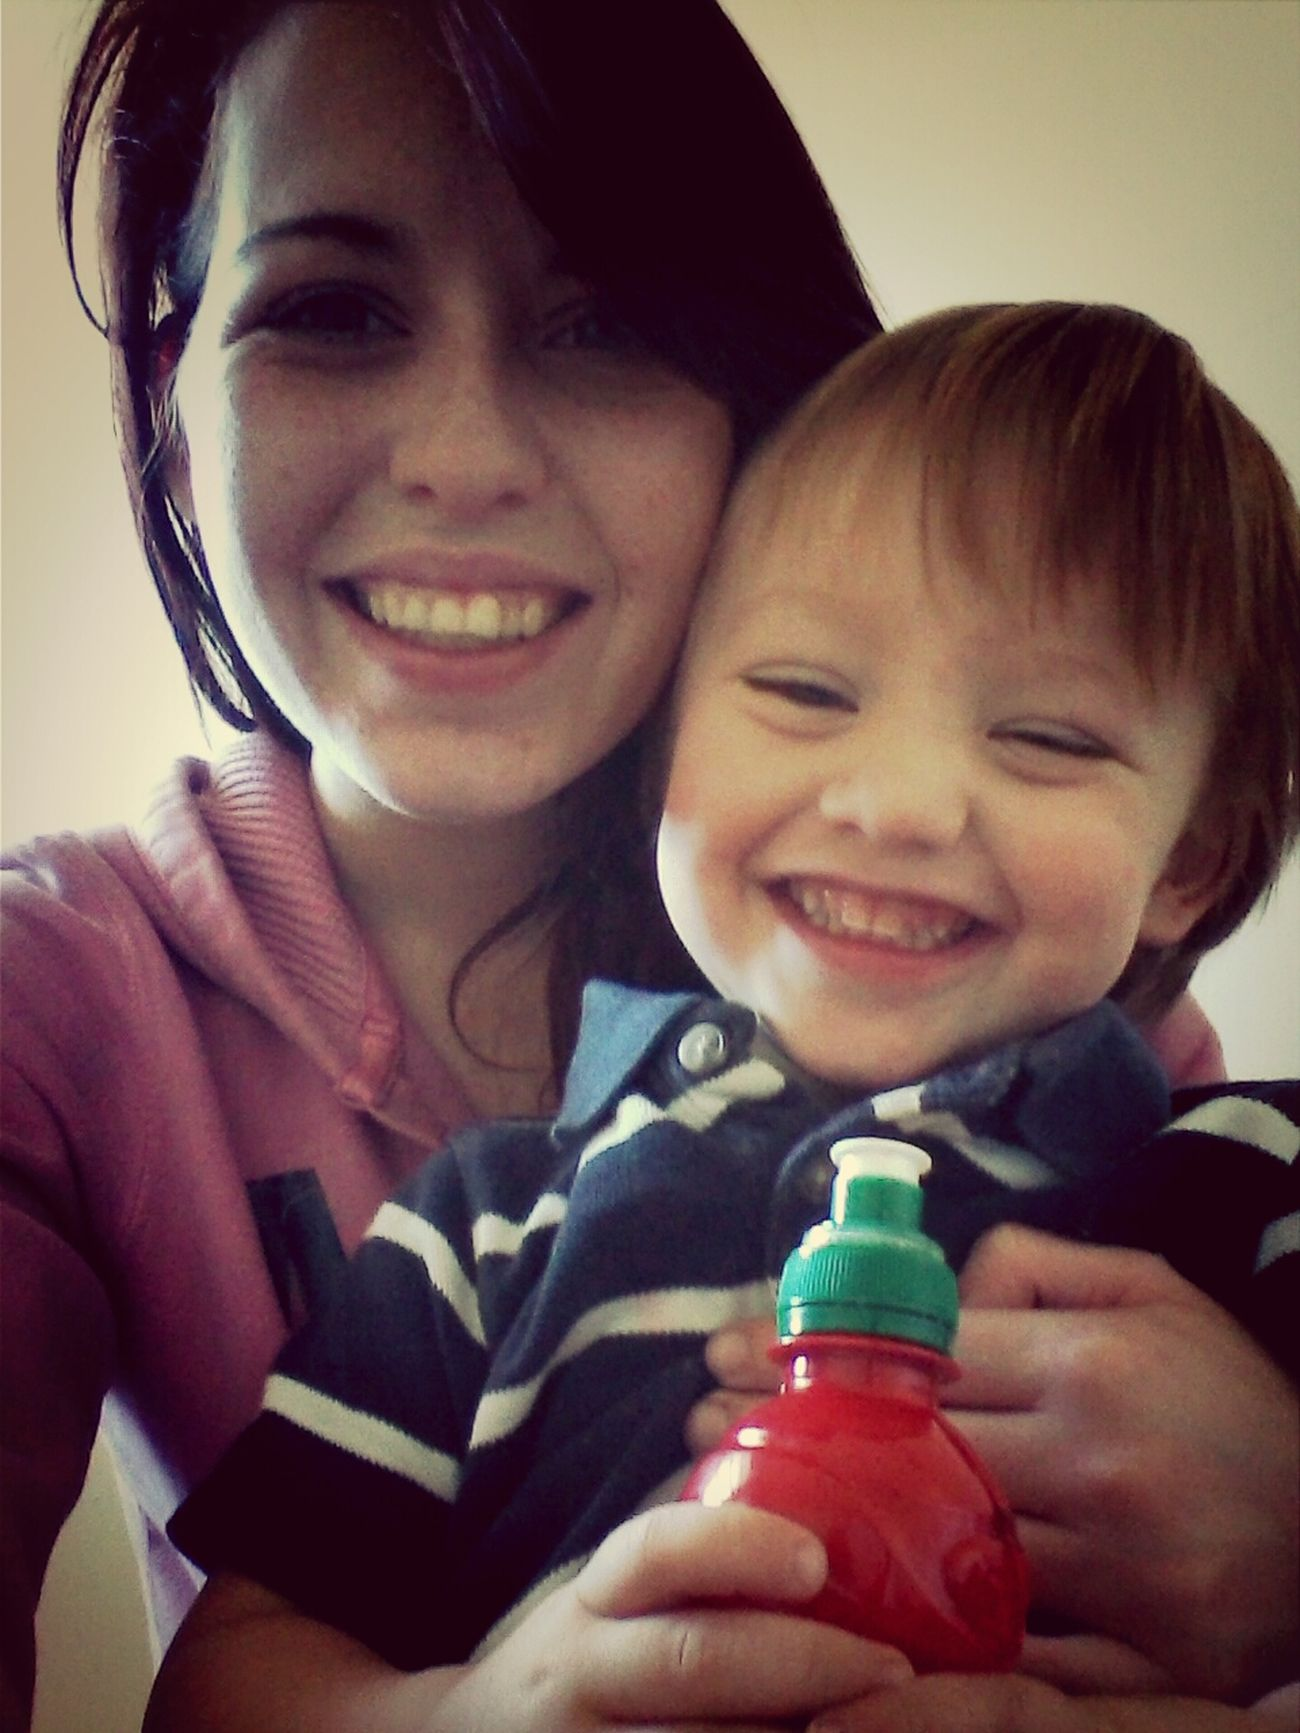 me and my baby boy at our new apartment :) ♡